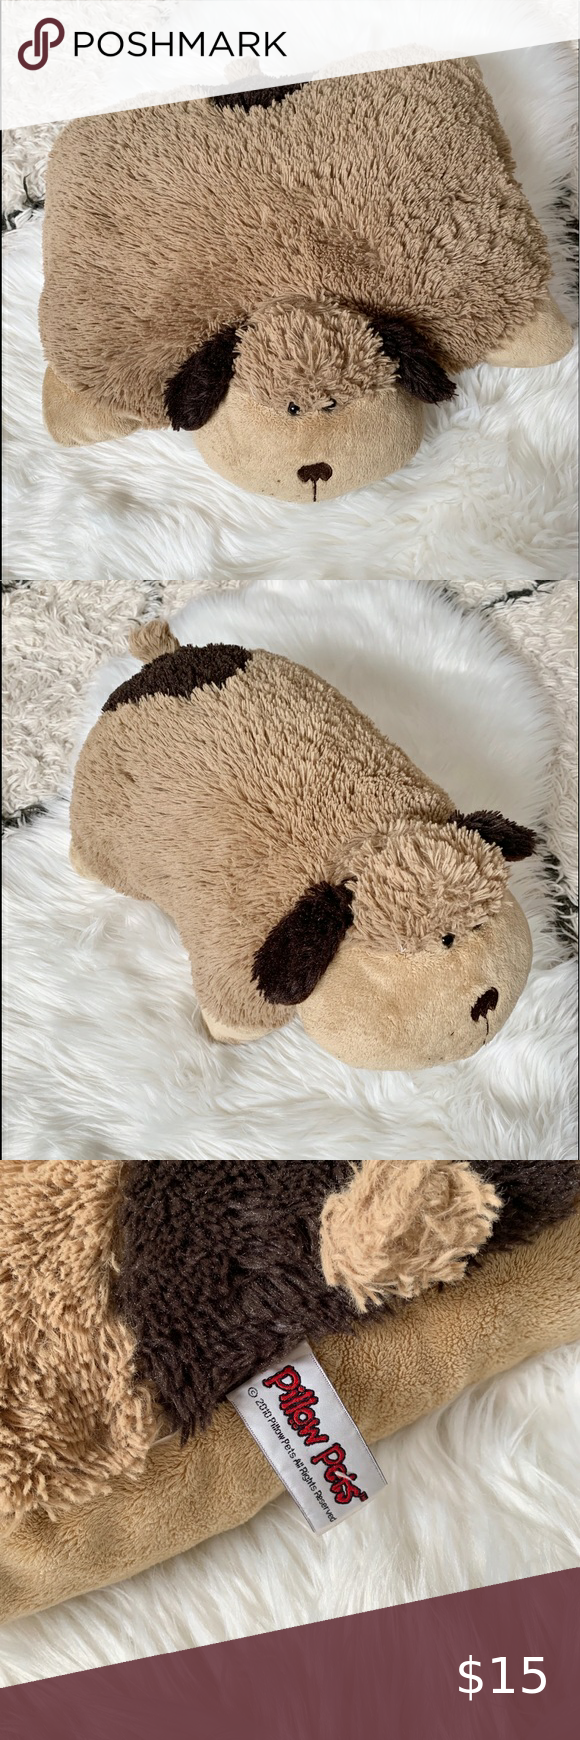 Pillow Pets!! ❤️ Get tons of warm snuggly happiness and cuddle up every day ...